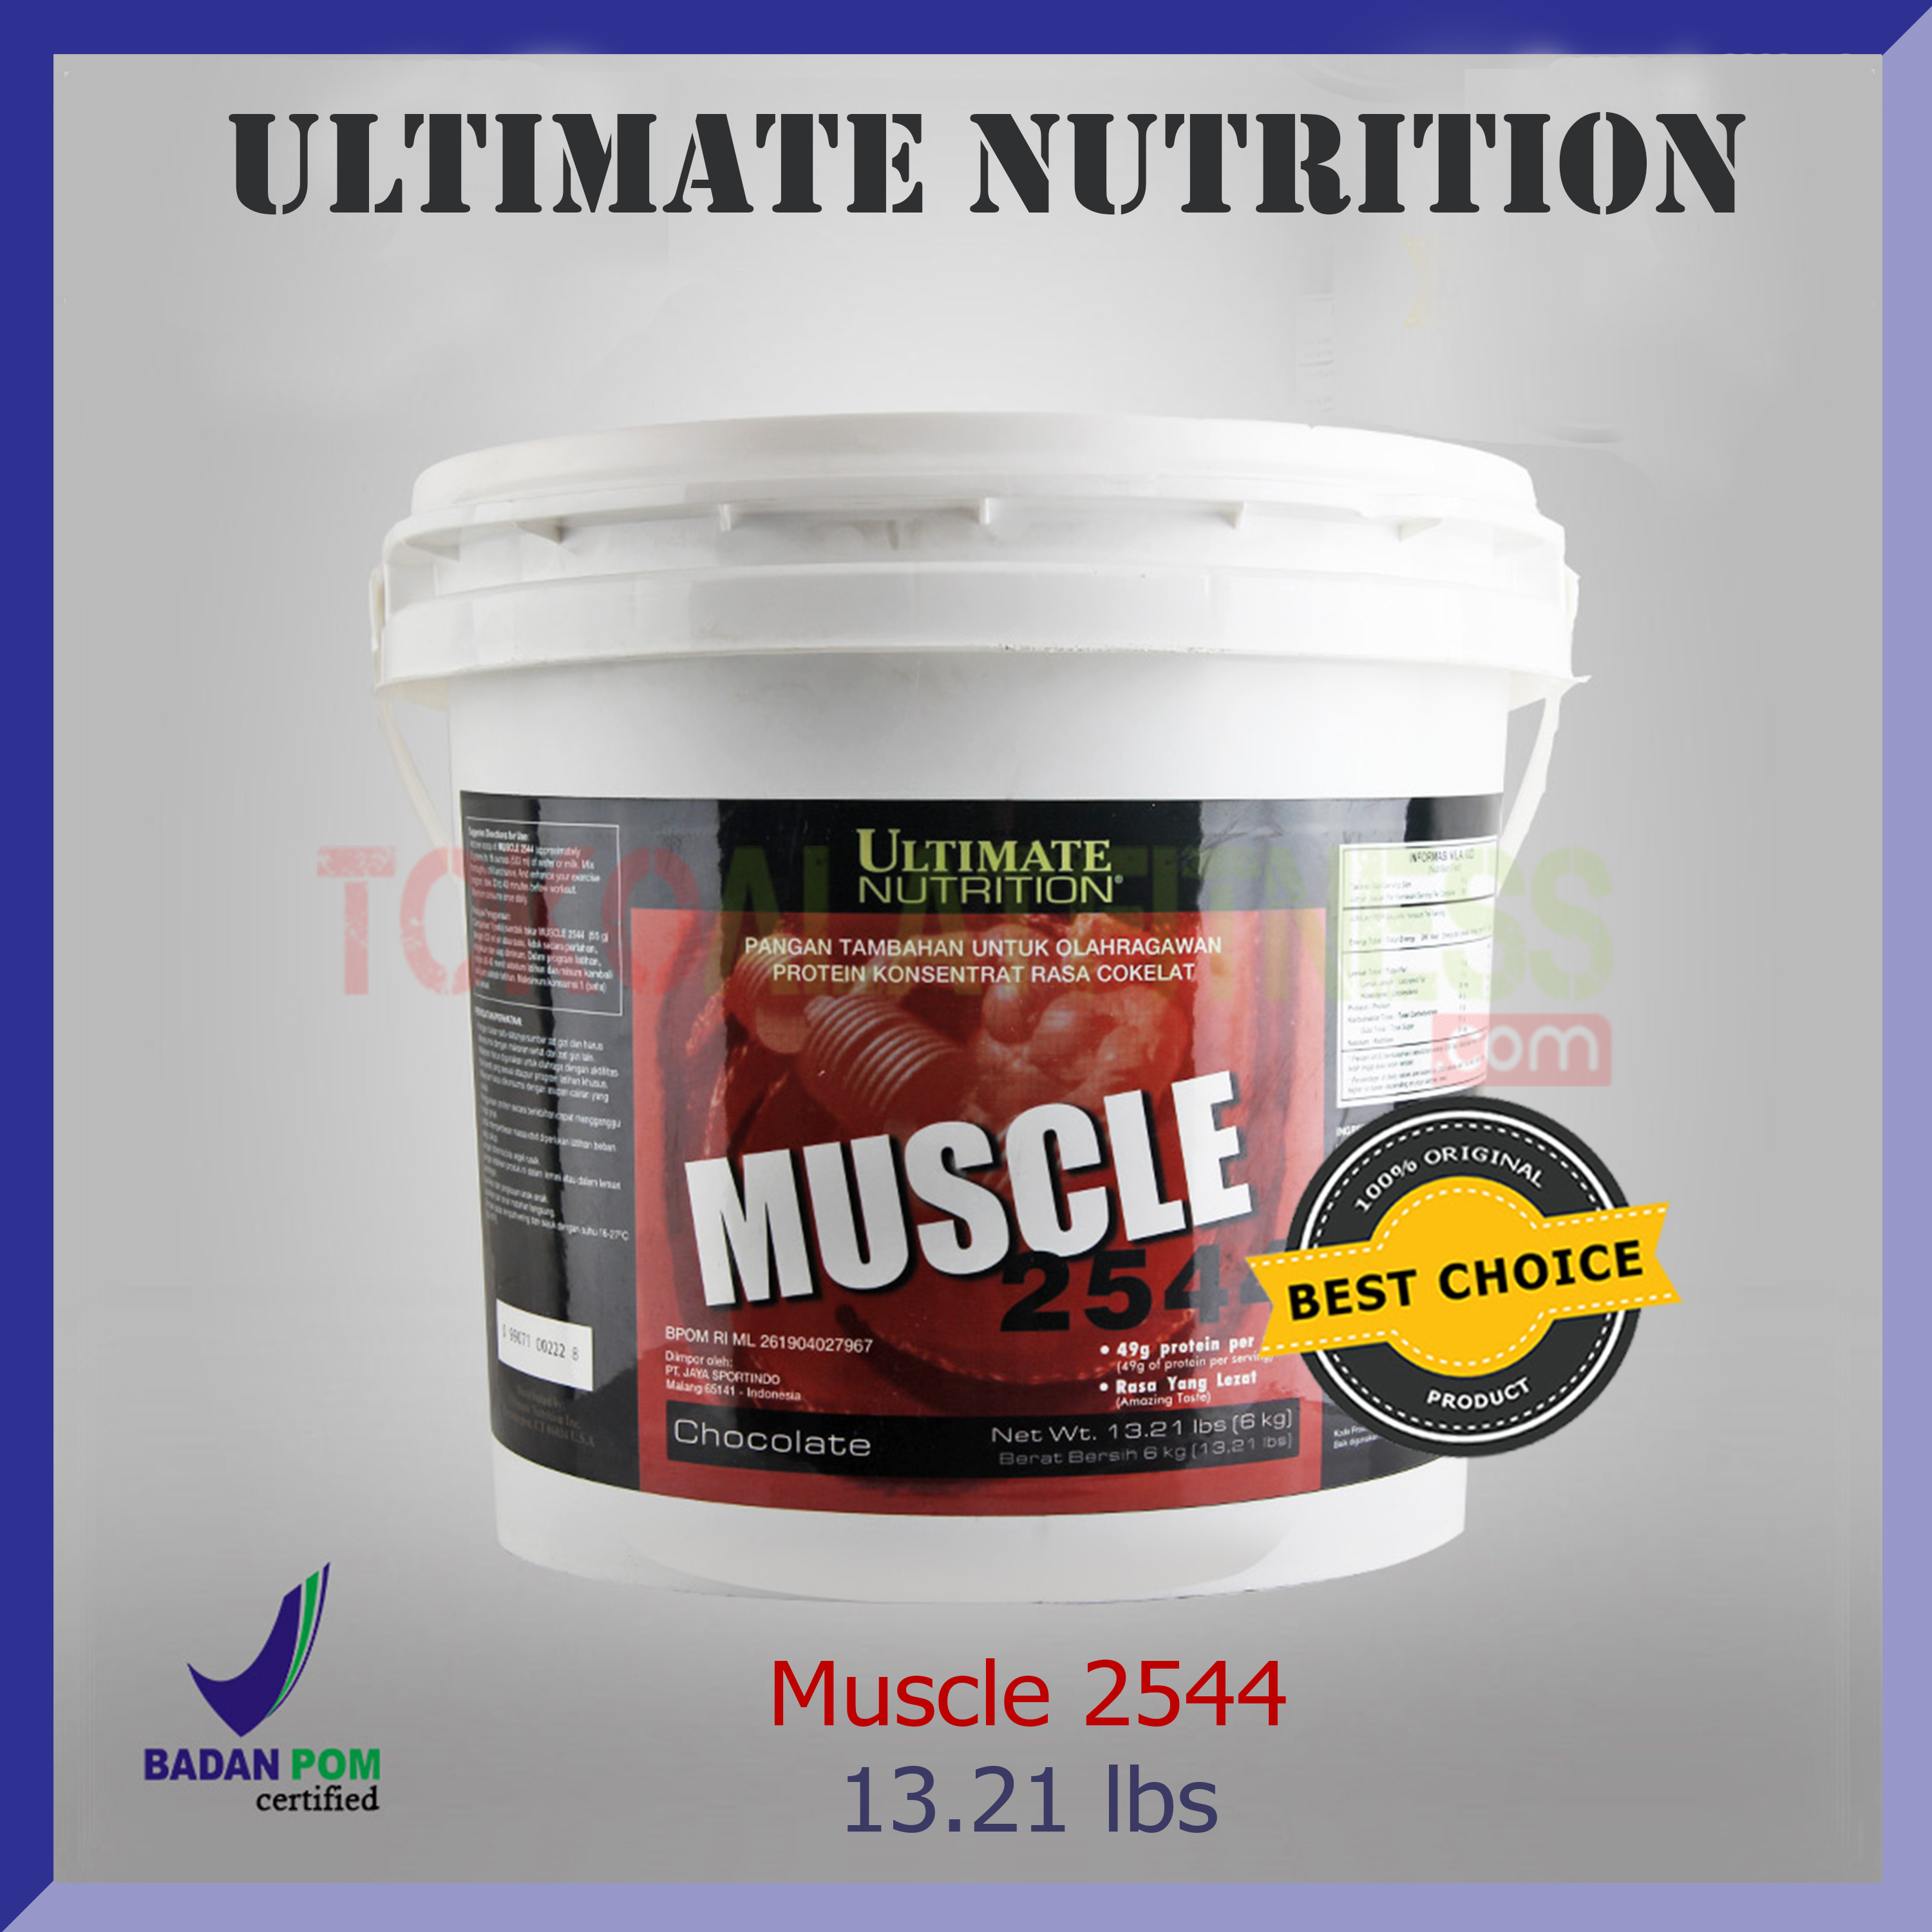 ULTIMATE NUTRITION Muscle 2544 13 - Muscle Juice 2544 13.21 lbs